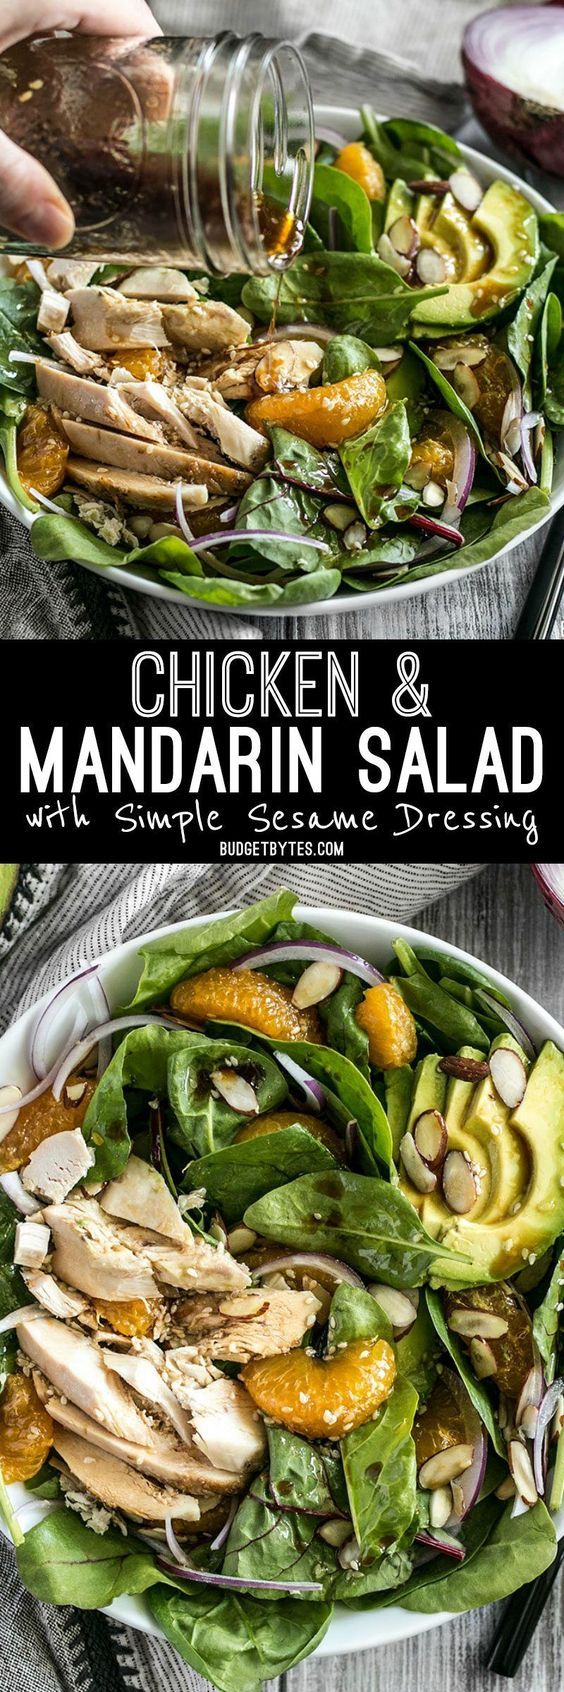 Chicken And Mandarin Salad With Simple Sesame Dressing Opskrift Salat Opskrifter